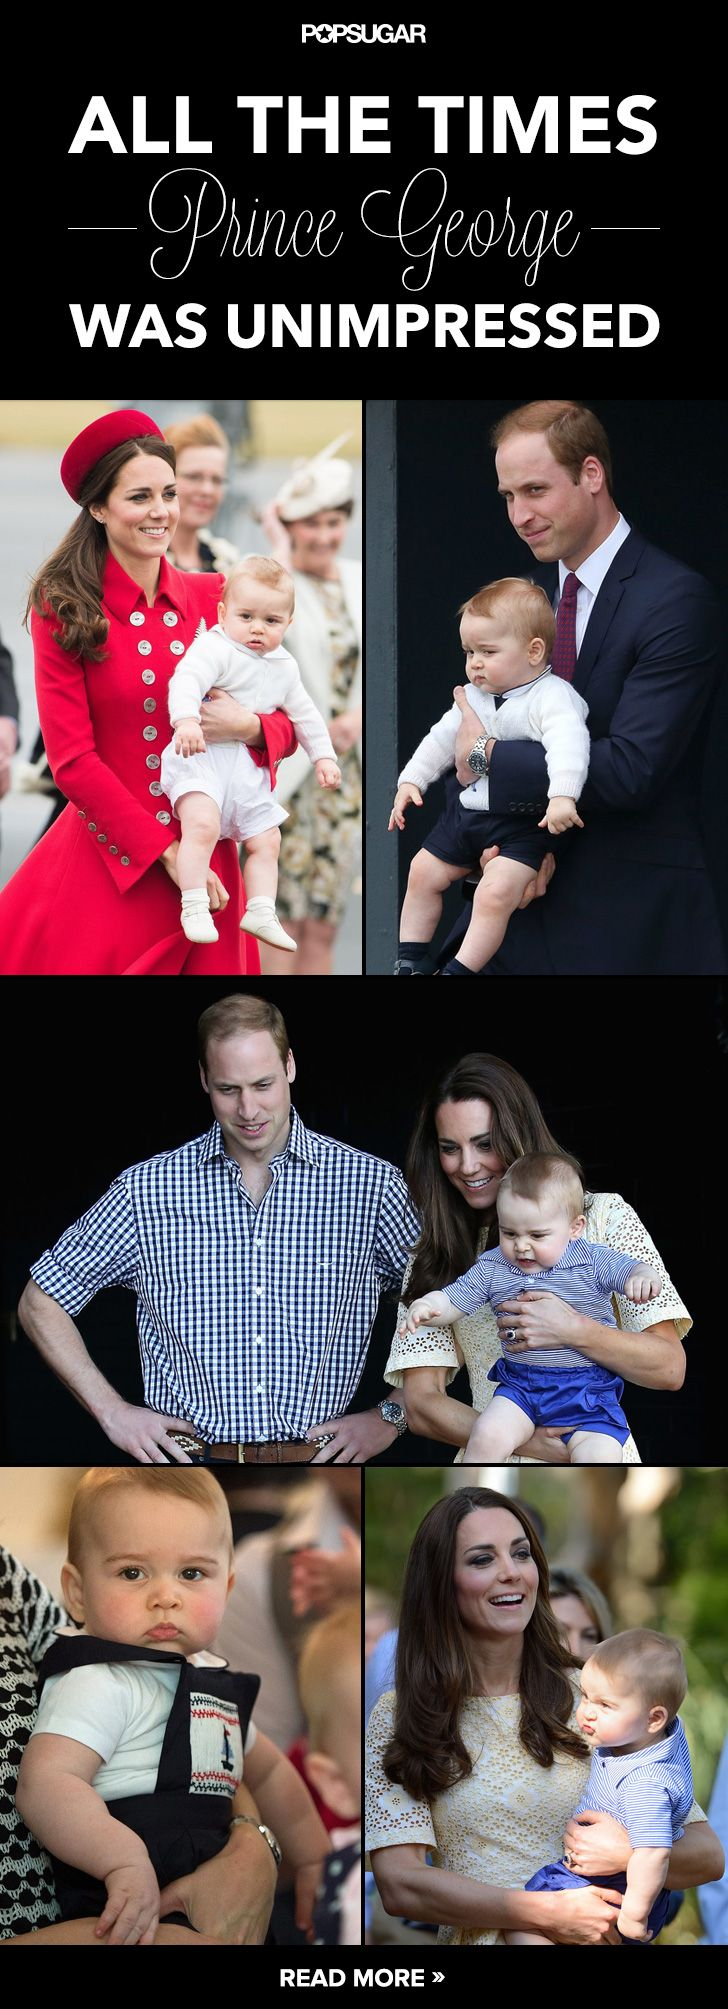 When Prince George is not amused, he's not afraid to show it. And it's hilarious.